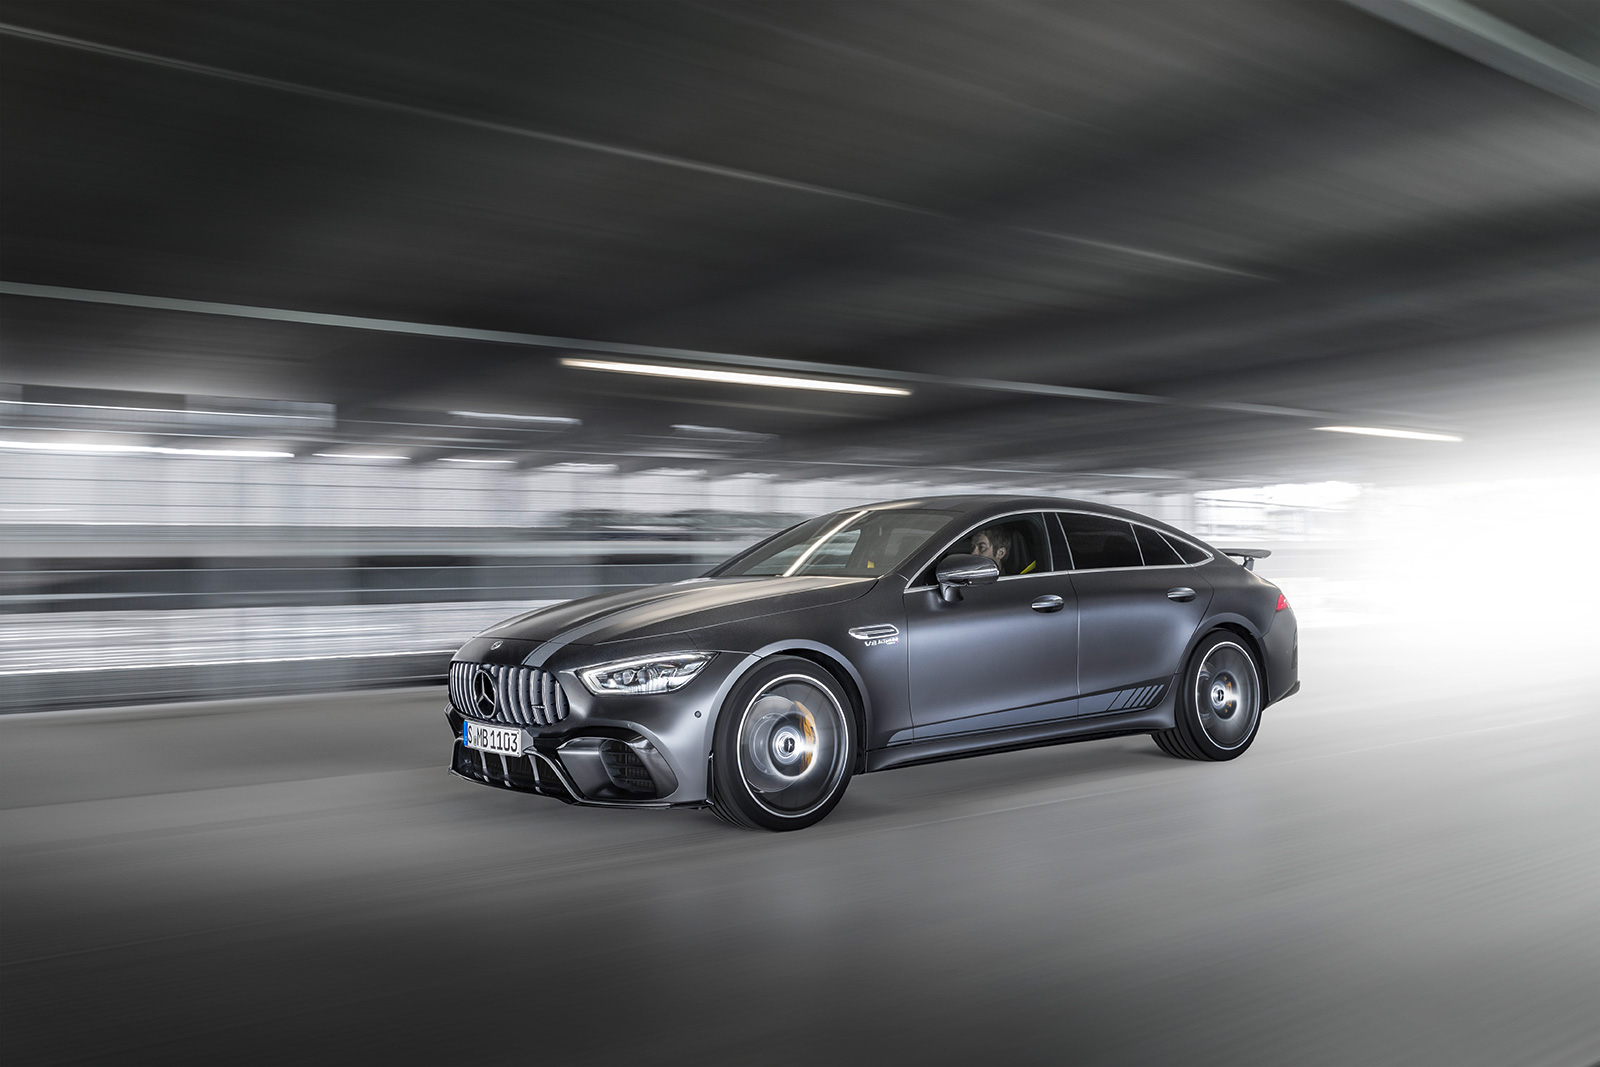 2019 Mercedes Amg Gt 4 Door Celebrates Launch With Edition 1 Model